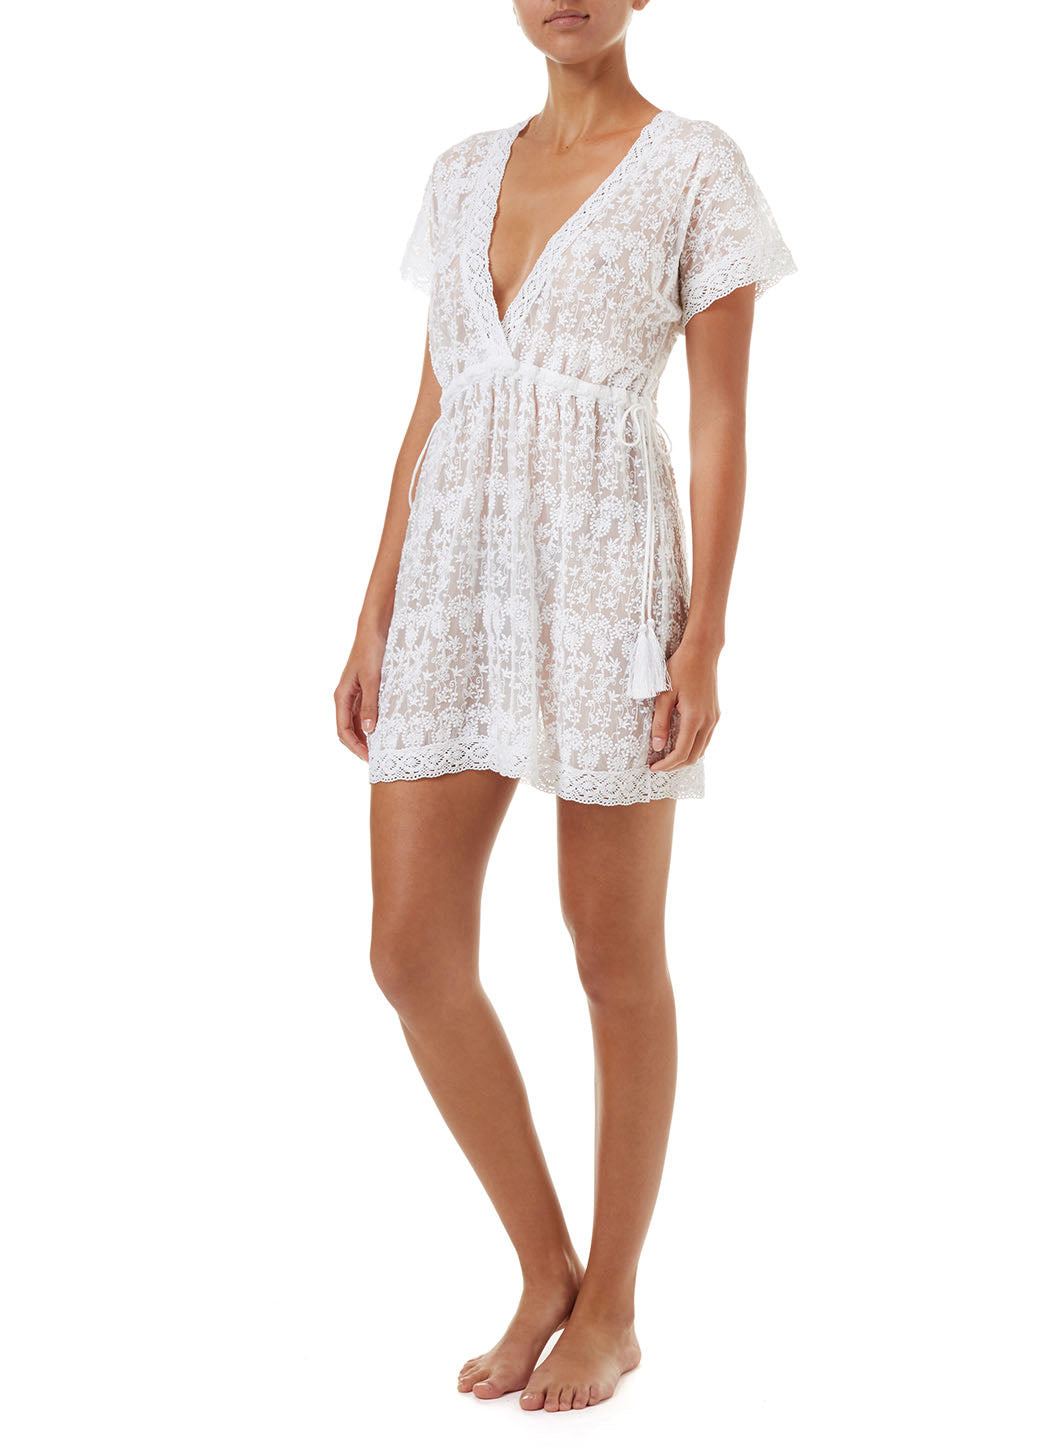 Adelina White Embroidered Short Tie-Side Beach Dress